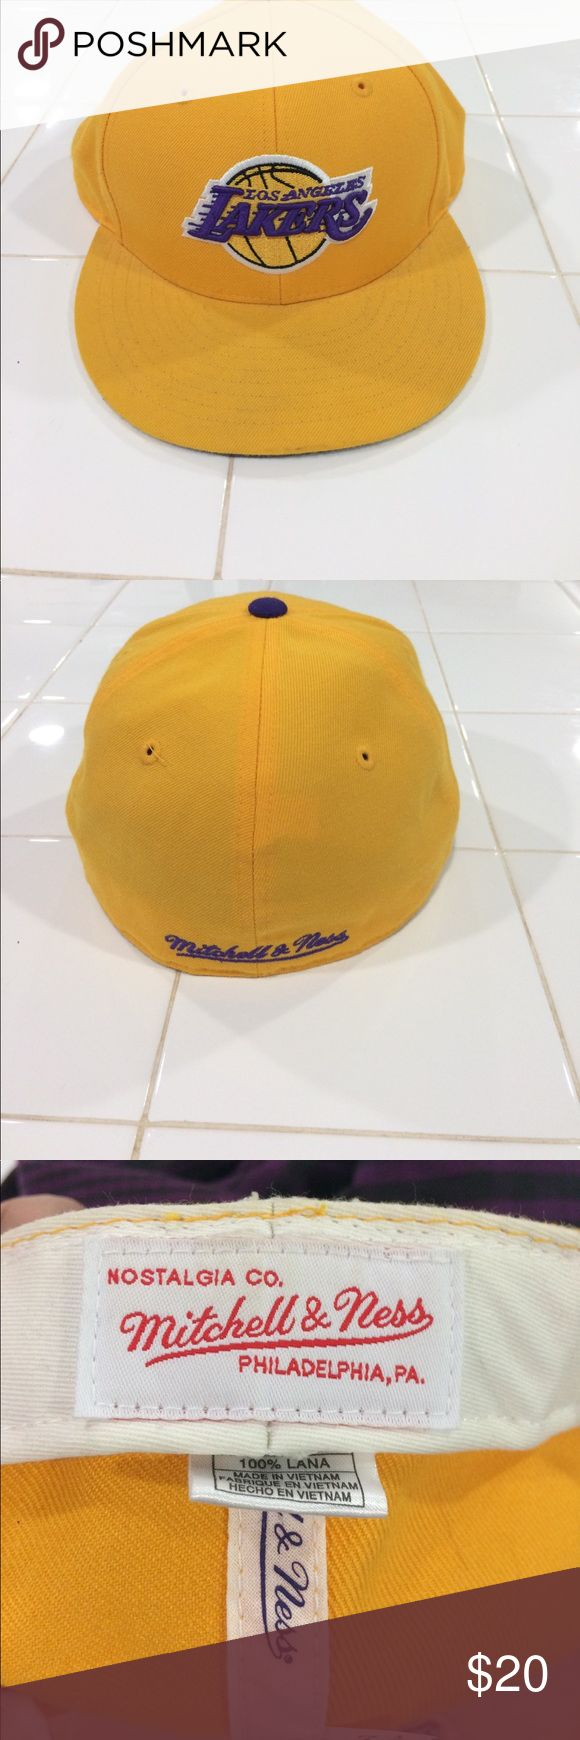 Mitchell & Ness Fitted Los Angeles Lakers Cap Mitchell & Ness Fitted Los Angeles Lakers Cap                     New without tags                                              Colors: Yellow, Purple, White (inside of cap)                       No Holes, Rips, or Stains                                      * From a Smoke and Pet Free Home                   Size: 7 1/2 Mitchell & Ness Accessories Hats